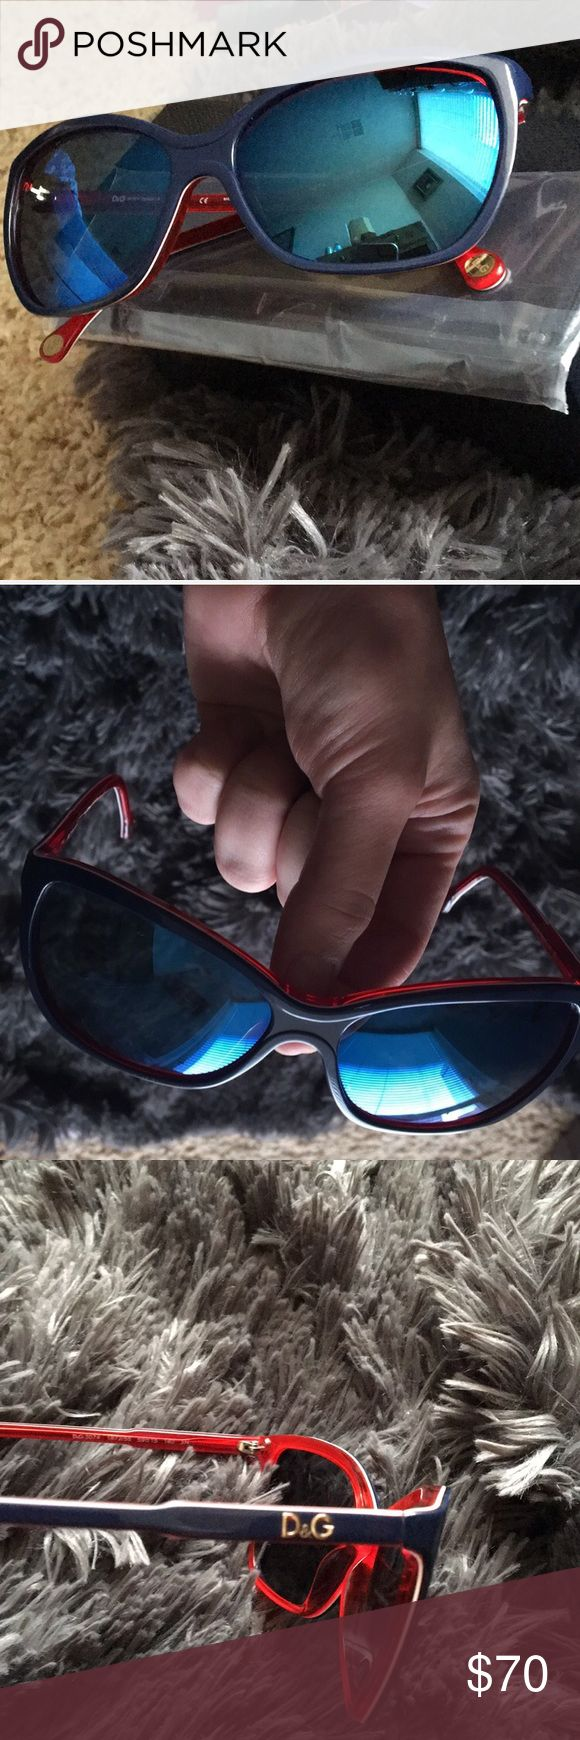 Dolce & Gabbana Mirrored Sunglasses Sold out sunglasses 😱 Get them here! I couldn't find stock pictures but I did find some eyeglasses with the same frame. These are blue lensed mirrored sunglasses. Really rad, great condition barely any wear. Just the glasses, but I will find something cool to put them in 😎Please don't hesitate to ask any questions🛍🔥 Dolce & Gabbana Accessories Sunglasses